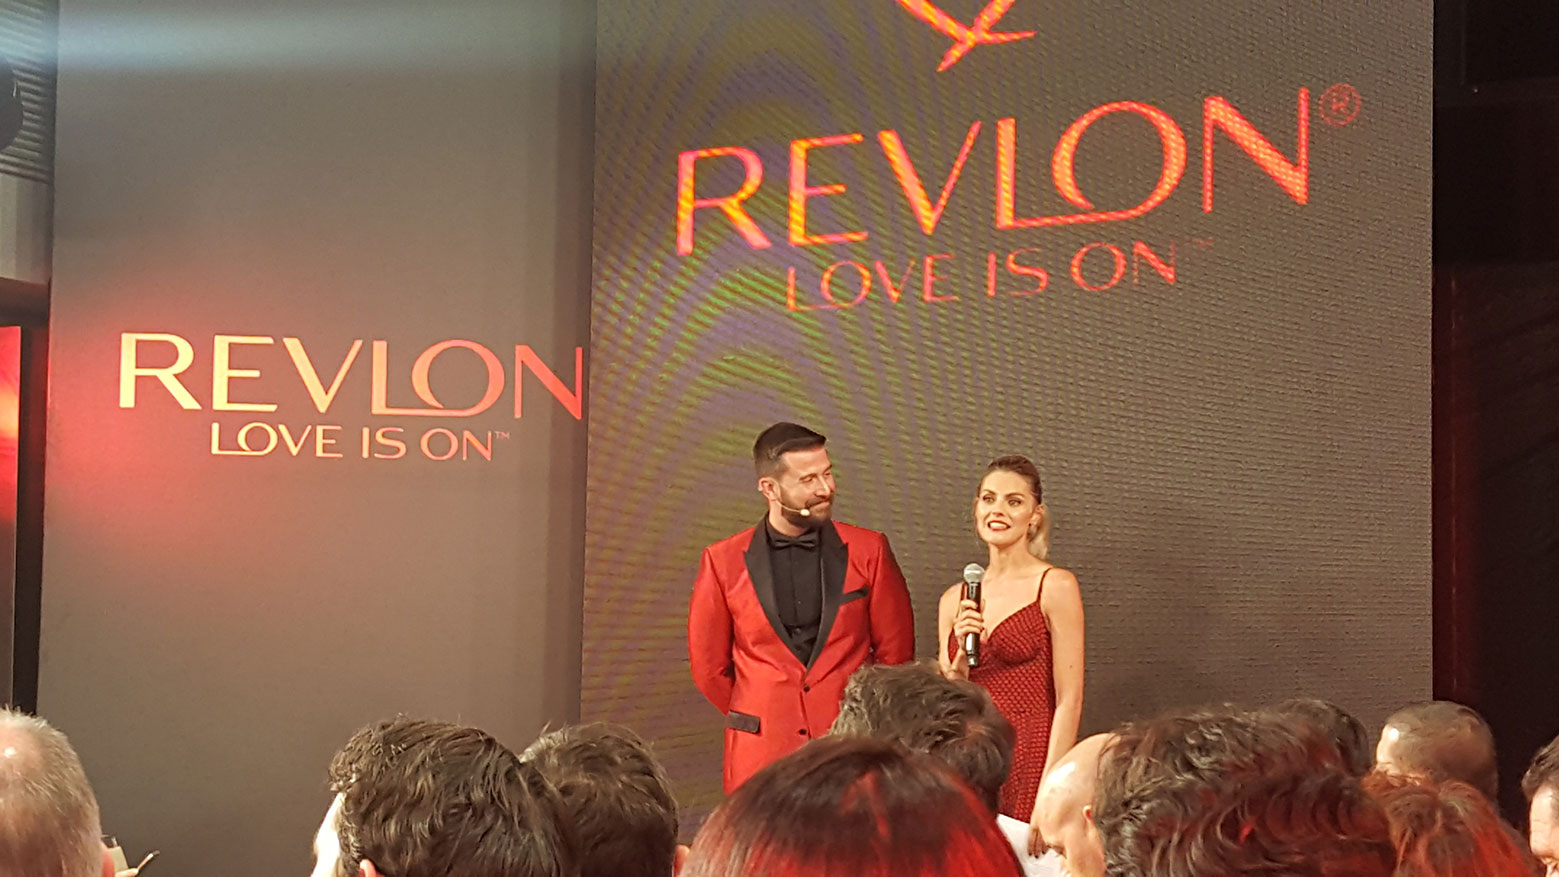 Miquel García, director creativo global de Revlon, con Amaia Salamanca, embajadora local de la marca.